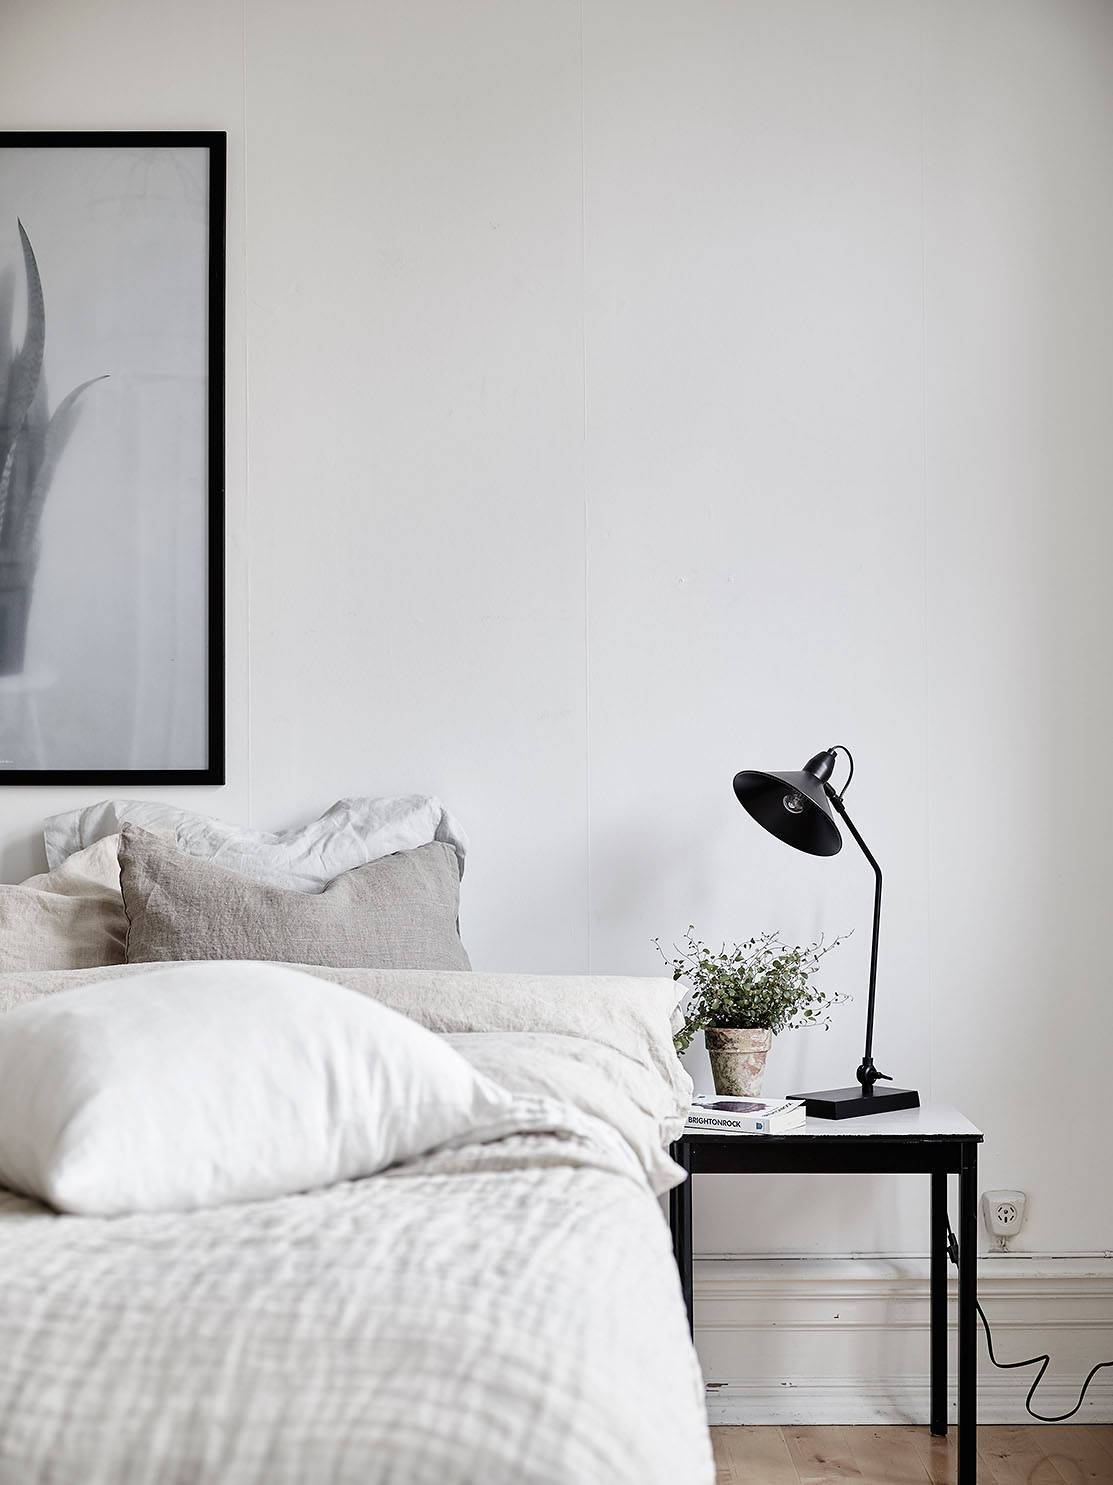 A cozy neutral bedroom with linen bedding and modern furniture. It has a lovely minimalist Scandinavian vibe going on!